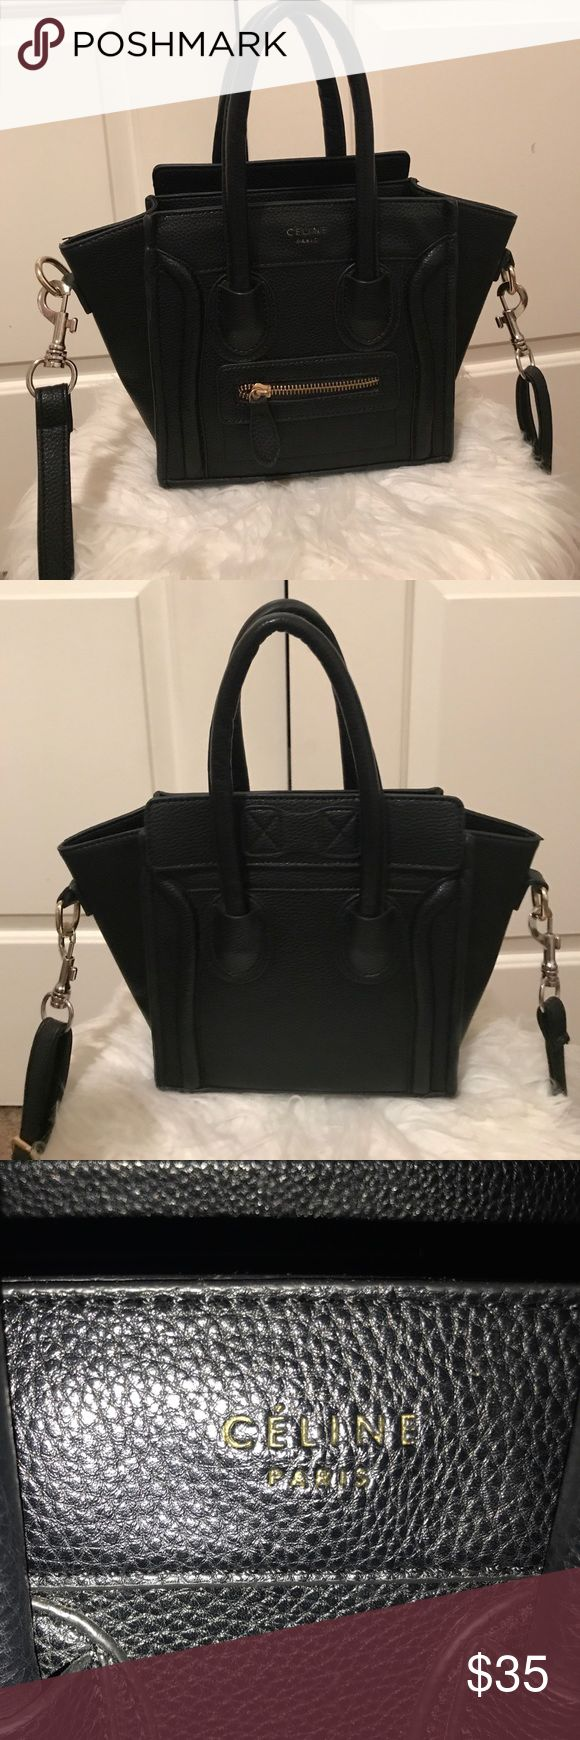 Replica Celine Nano Purse This is not authentic but looks very real & very durable. holds a lot of things & is super cute. this is Celine's Speckled print Nano Bag i can make reasonable offers :) Celine Bags Crossbody Bags